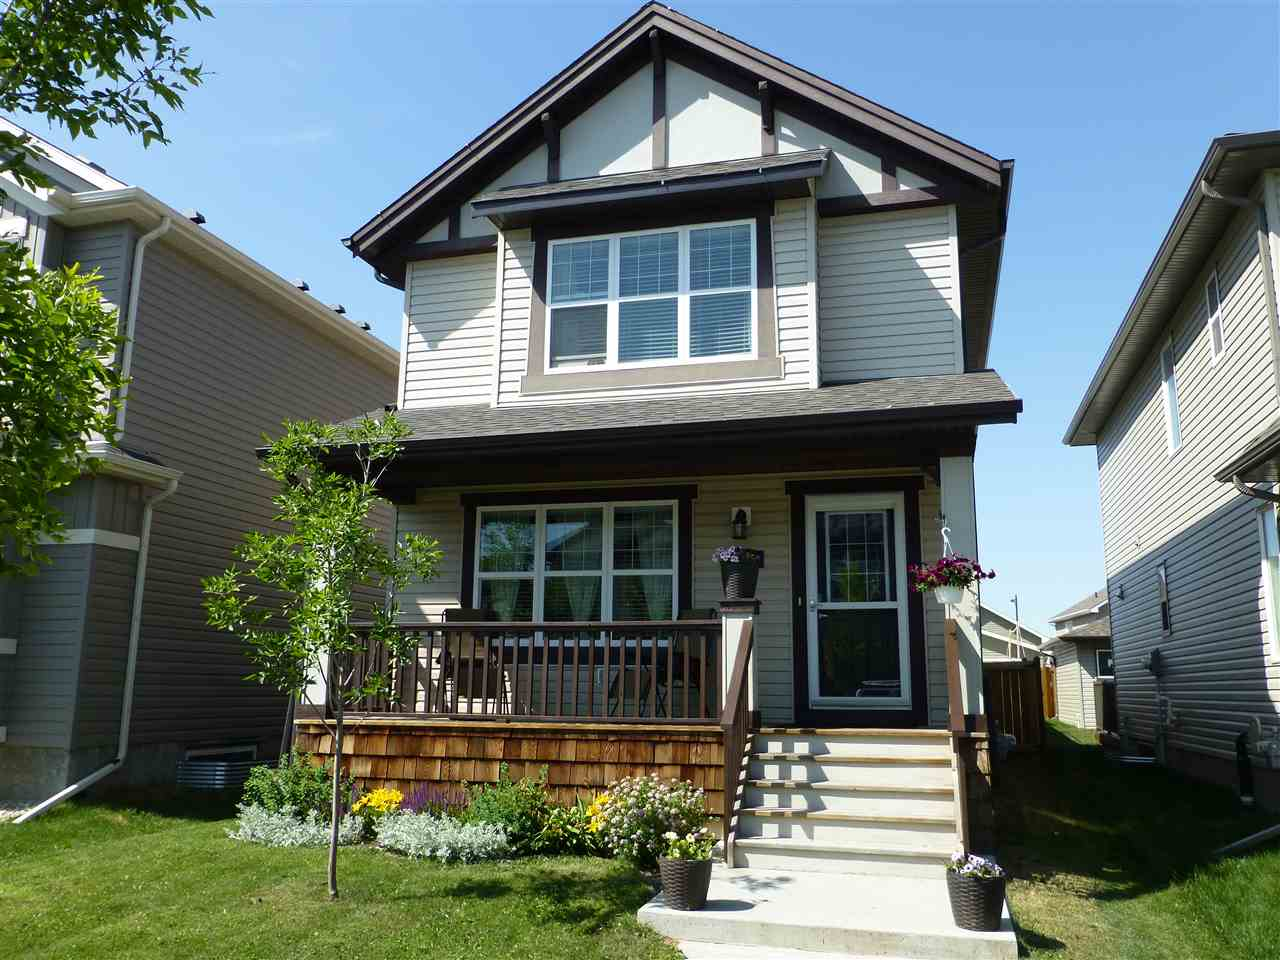 Main Photo: 1536 35 Avenue in Edmonton: Zone 30 House for sale : MLS® # E4076173